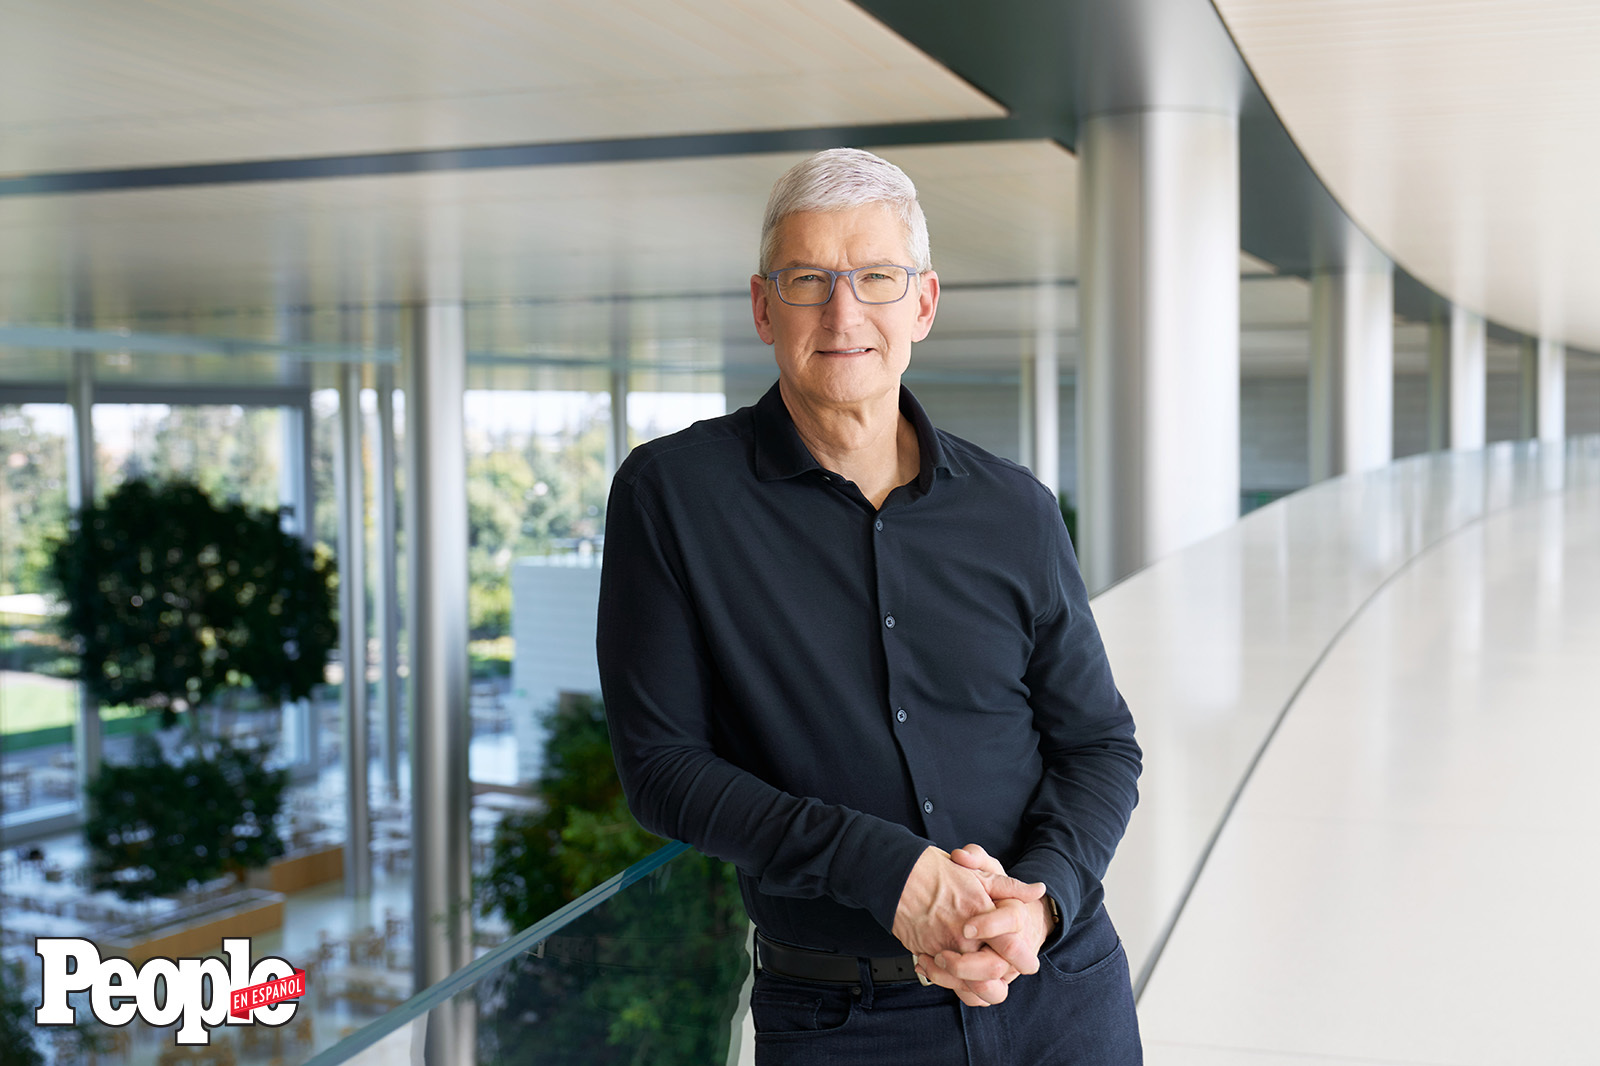 Apple CEO Tim Cook at Apple Park (DO NOT REUSE)